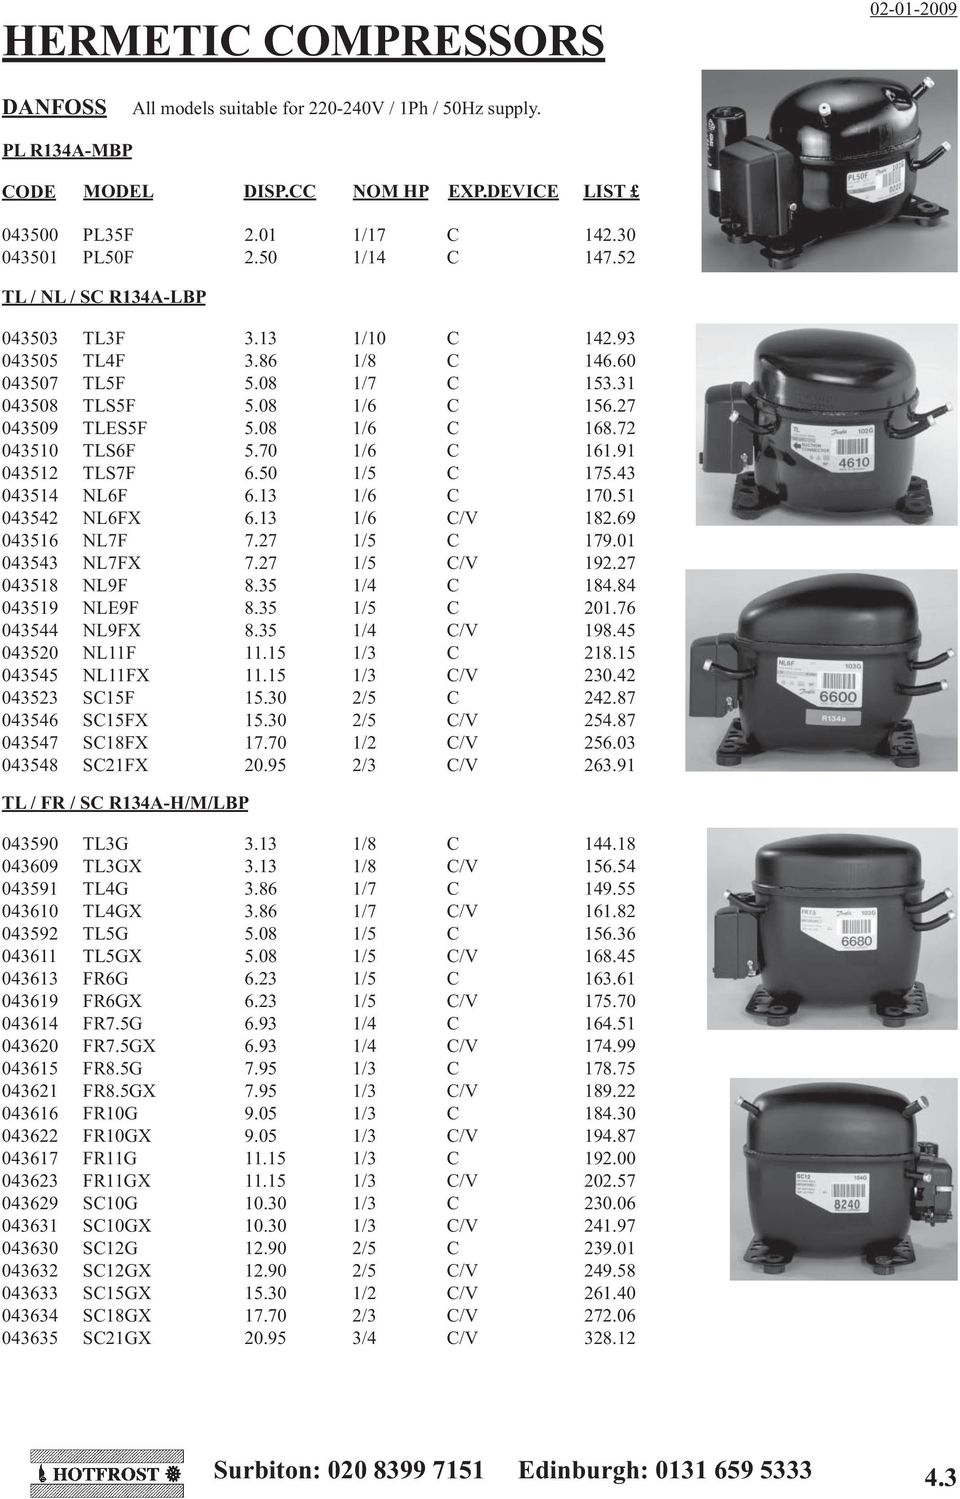 Danfoss Fr8 5g Compressor Wiring Diagram Trusted Diagrams Hermetic Compressors And Spares Pdf